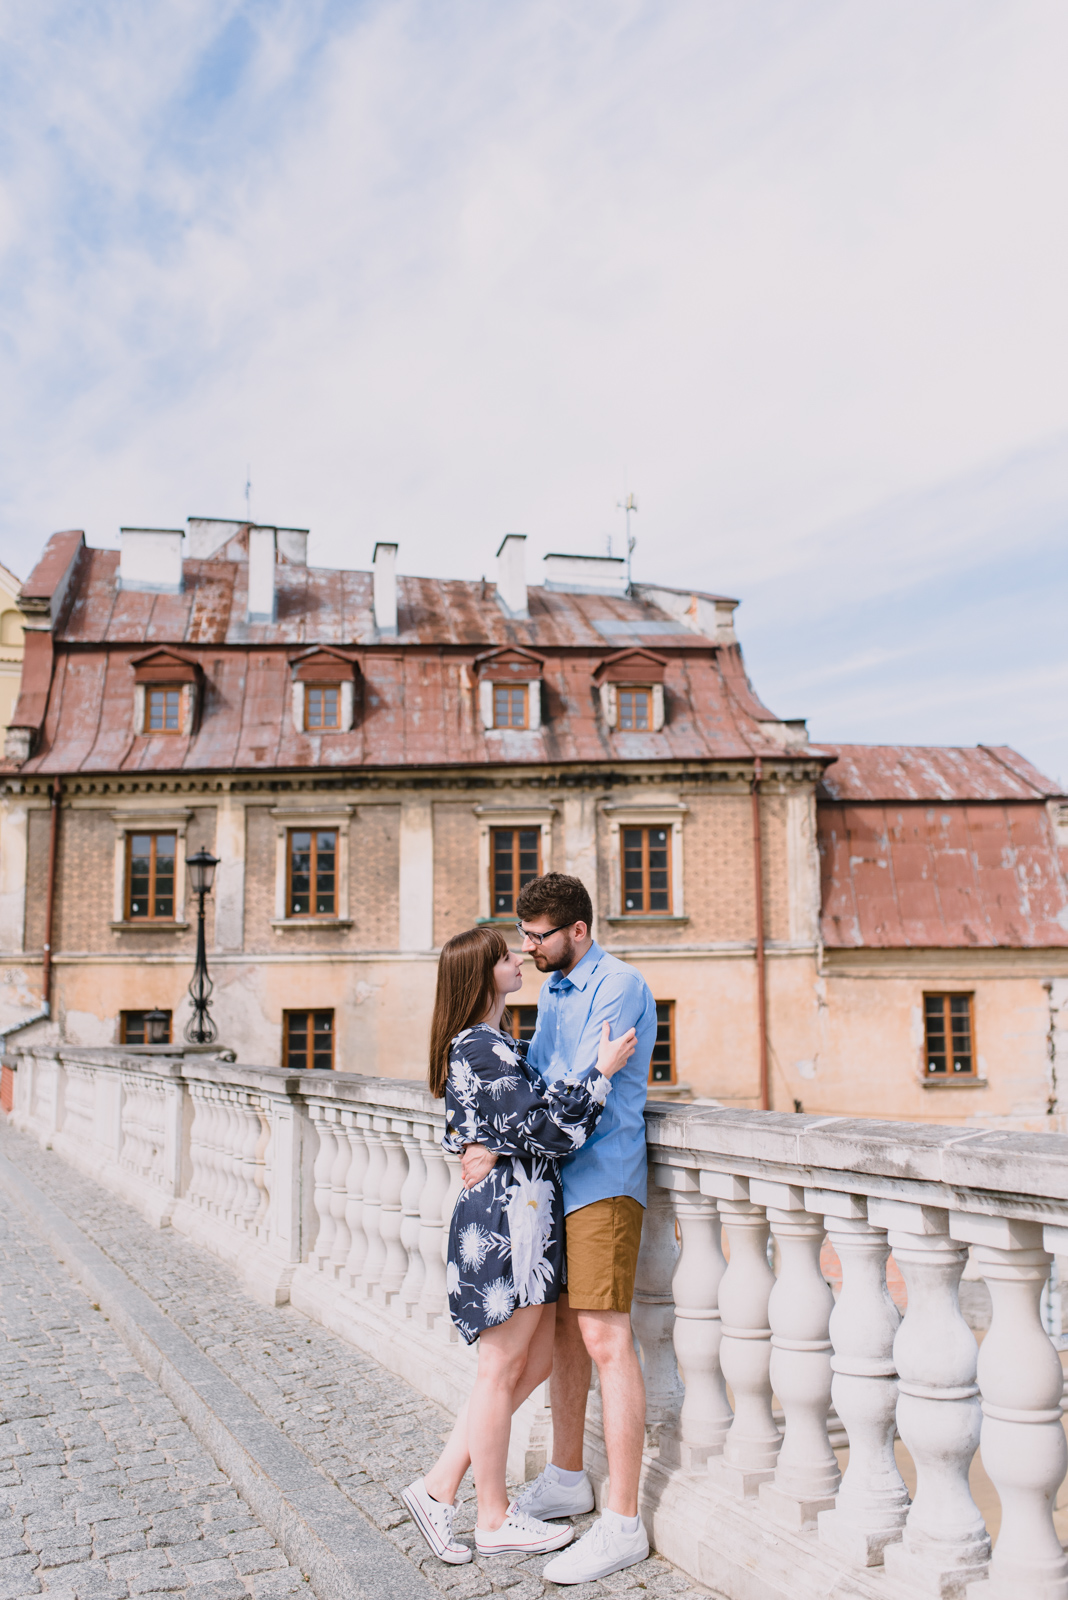 engagement shoot in Lublin Poland, summer engagement shoot in the city, old town engagement photos taken by Hello, Sugar Destination Wedding Photography-8.jpg